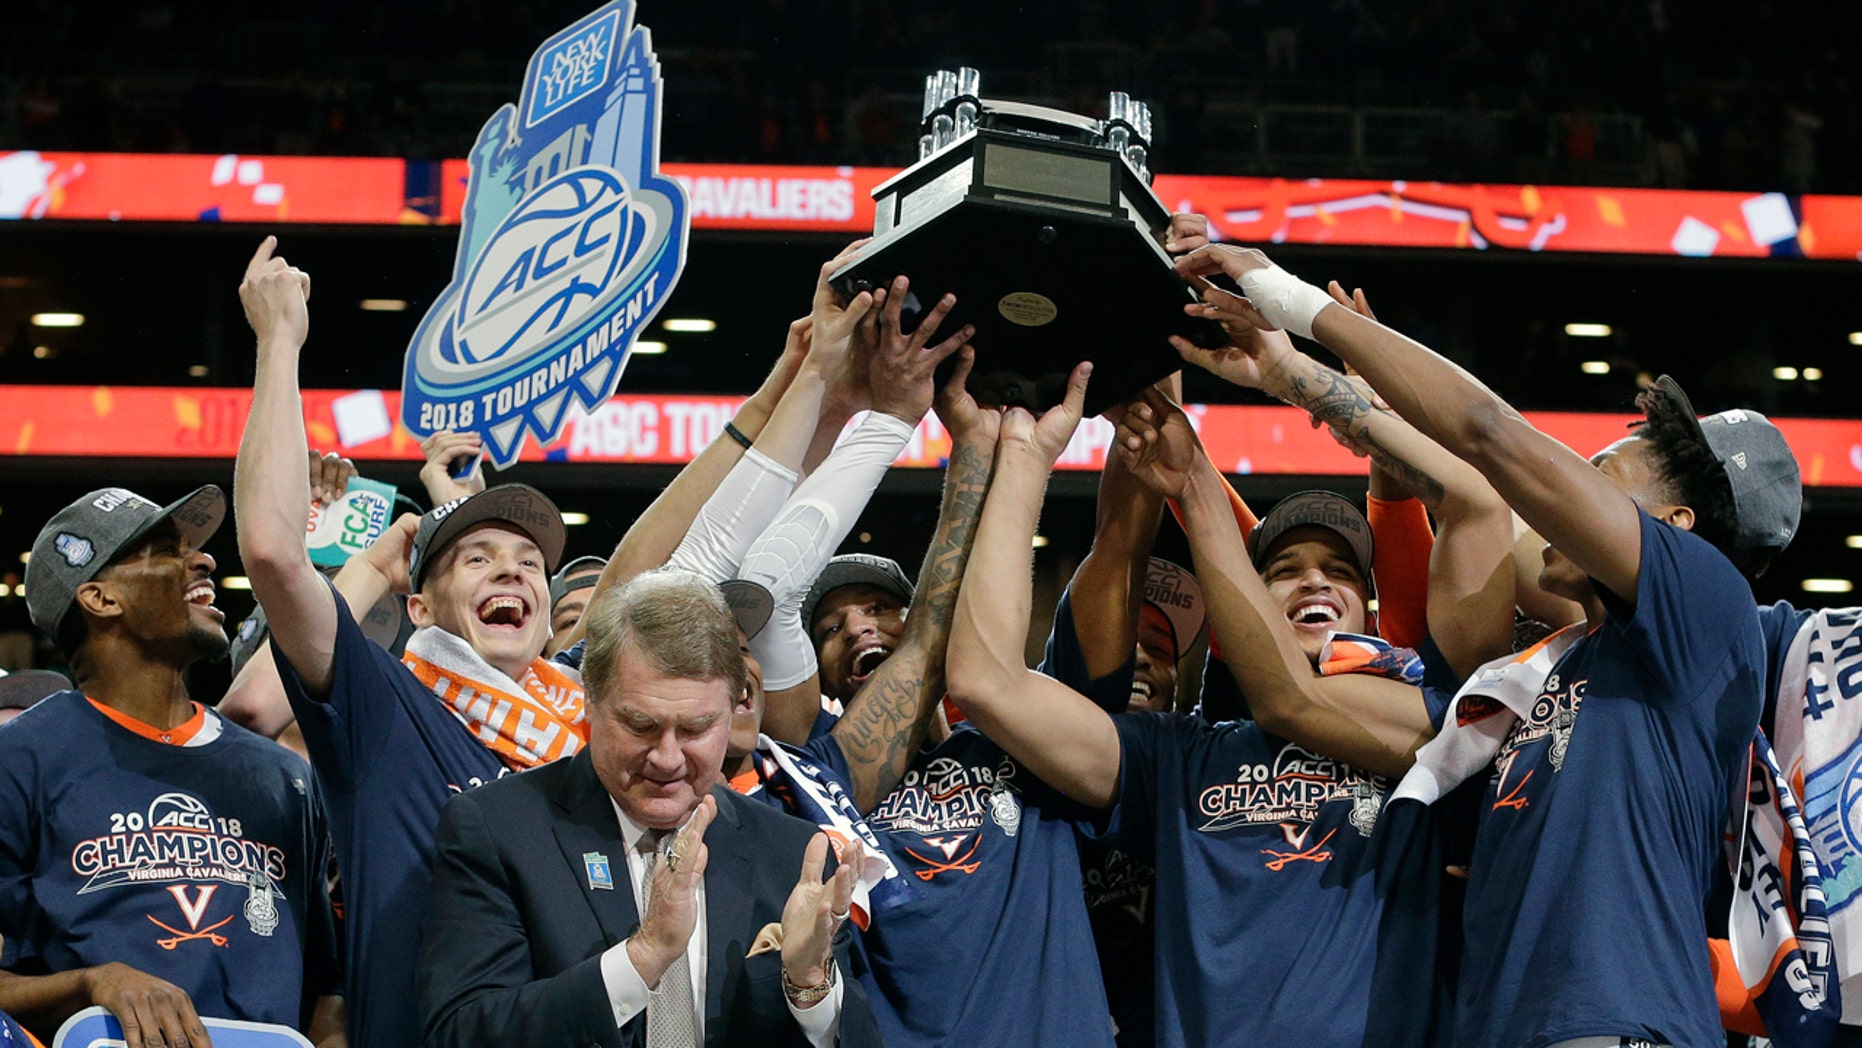 Virginia won the ACC regular season and tournament championship and finished the season 31-2.